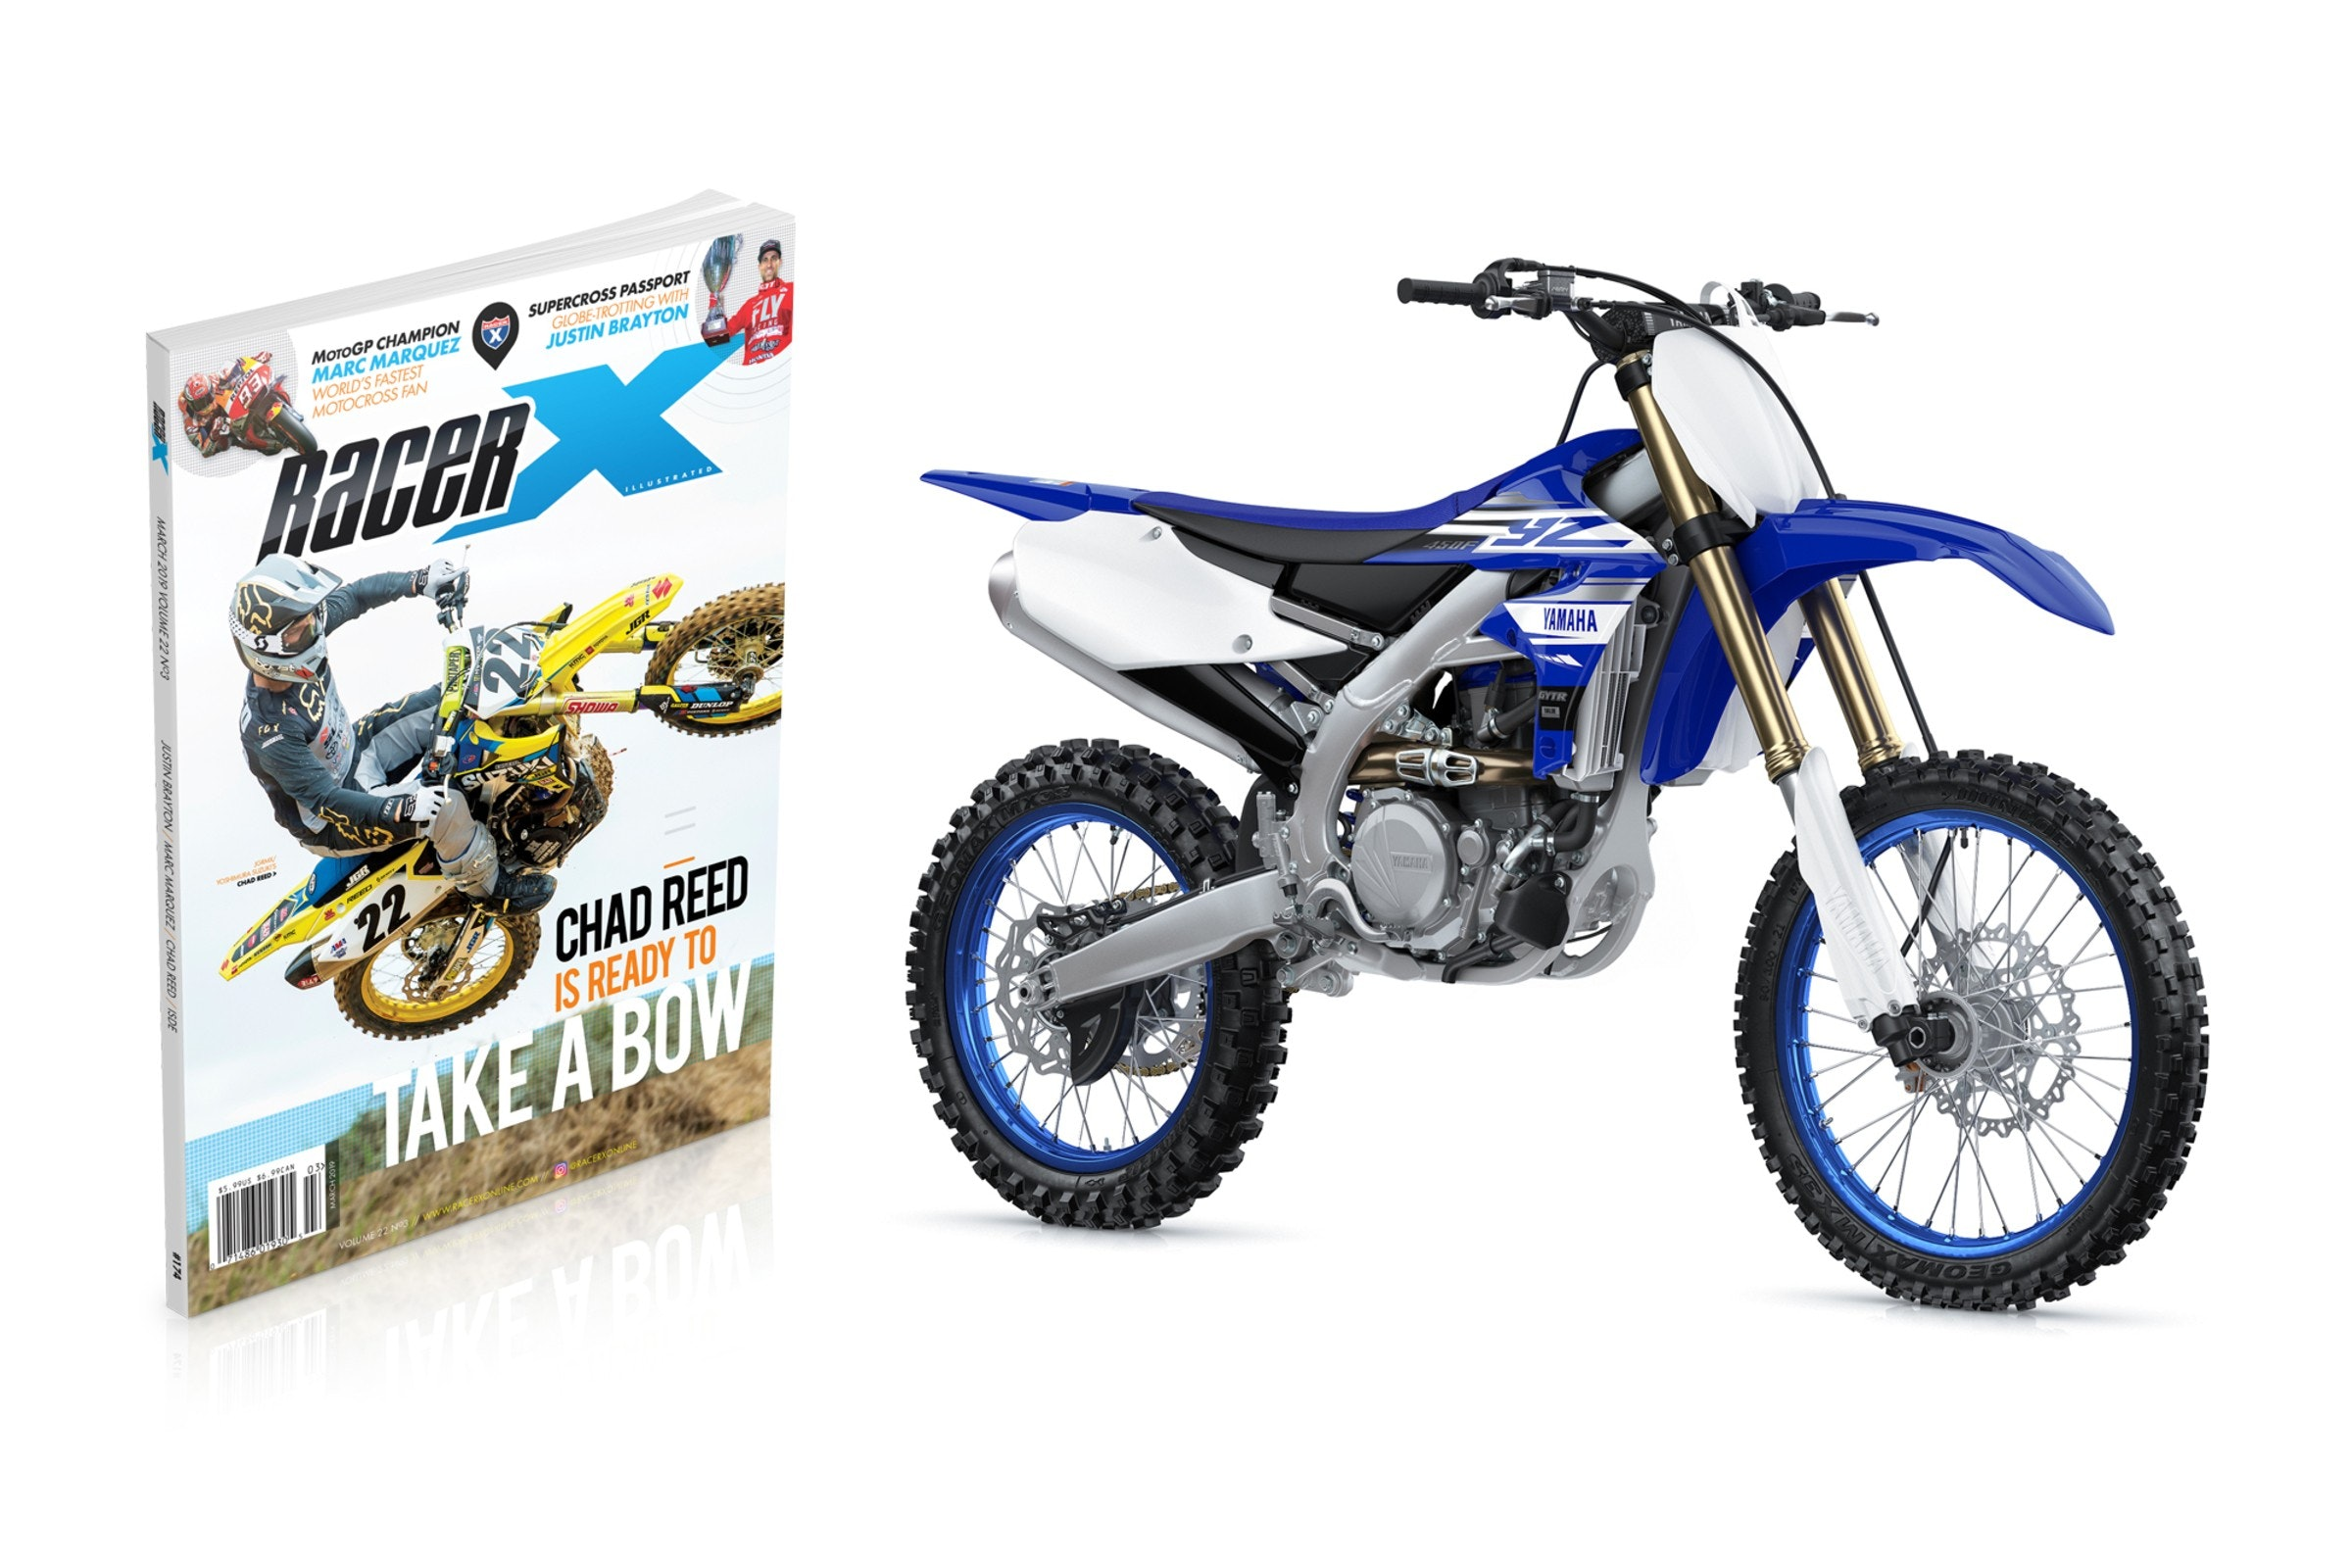 Yz450f Sweepstakes At Glendale Supercross Racer X Online